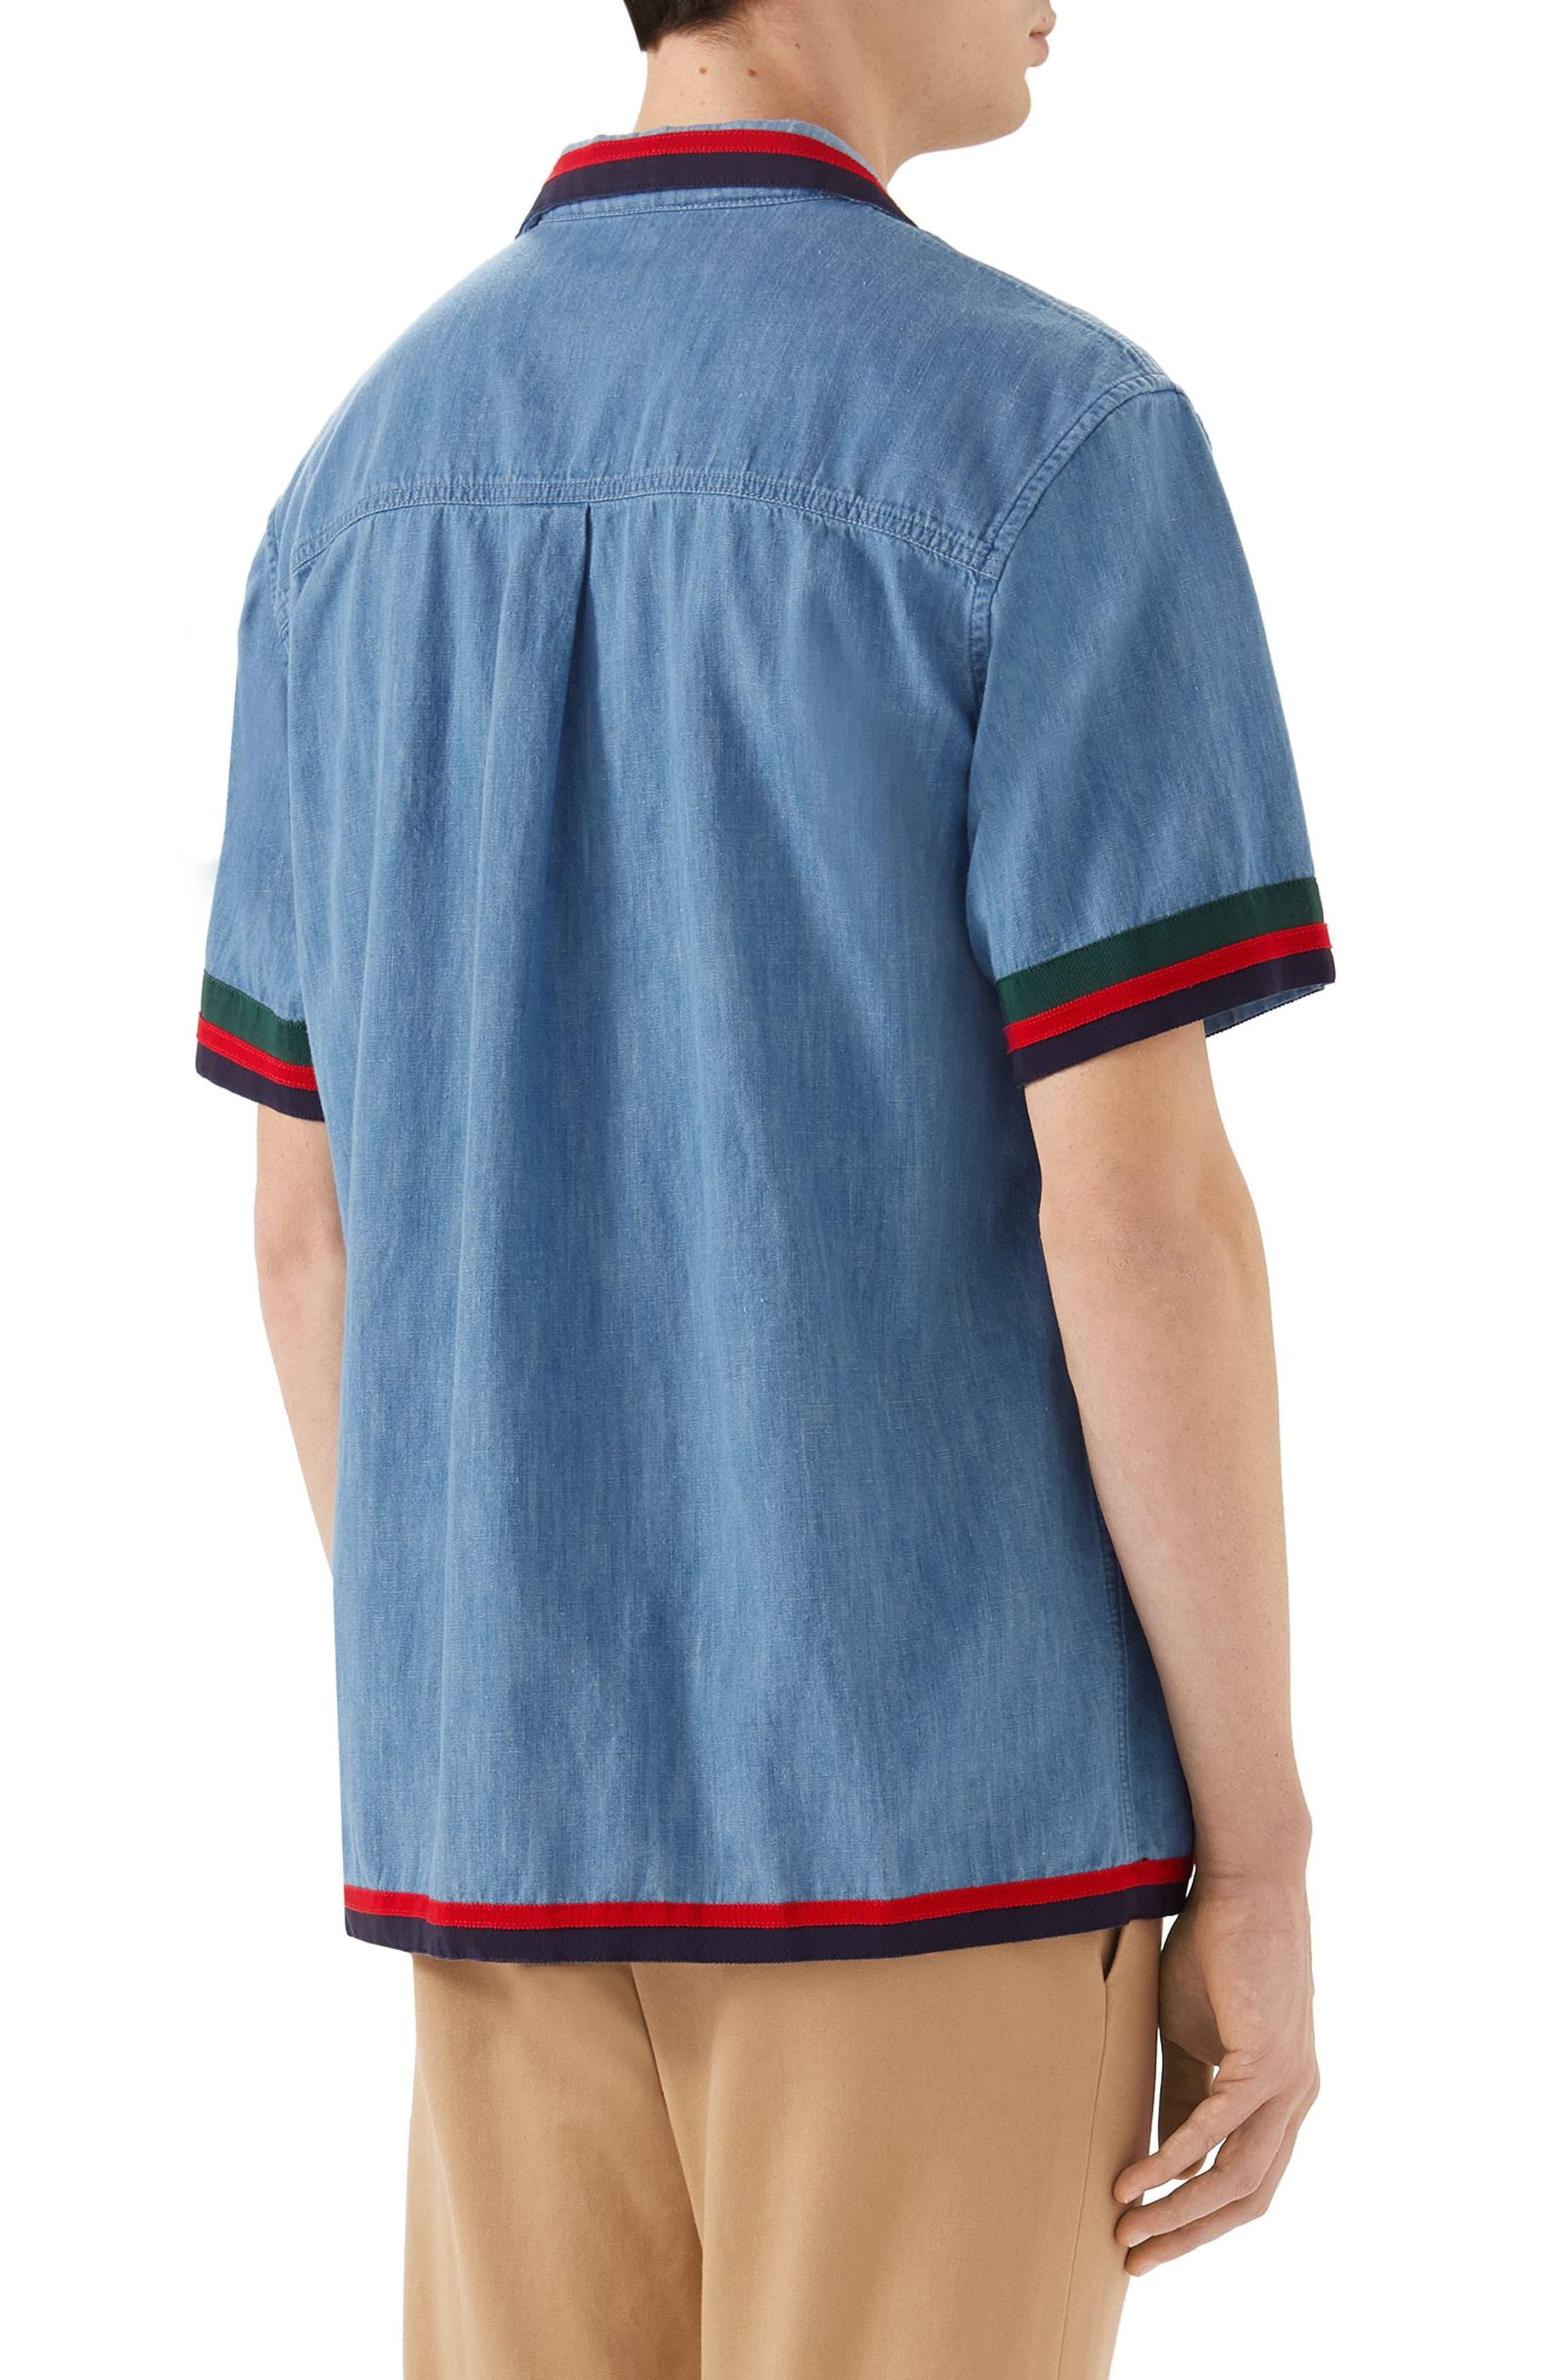 a920e2ce1 Gucci Stonewash Denim Bowling Shirt in Blue for Men - Lyst